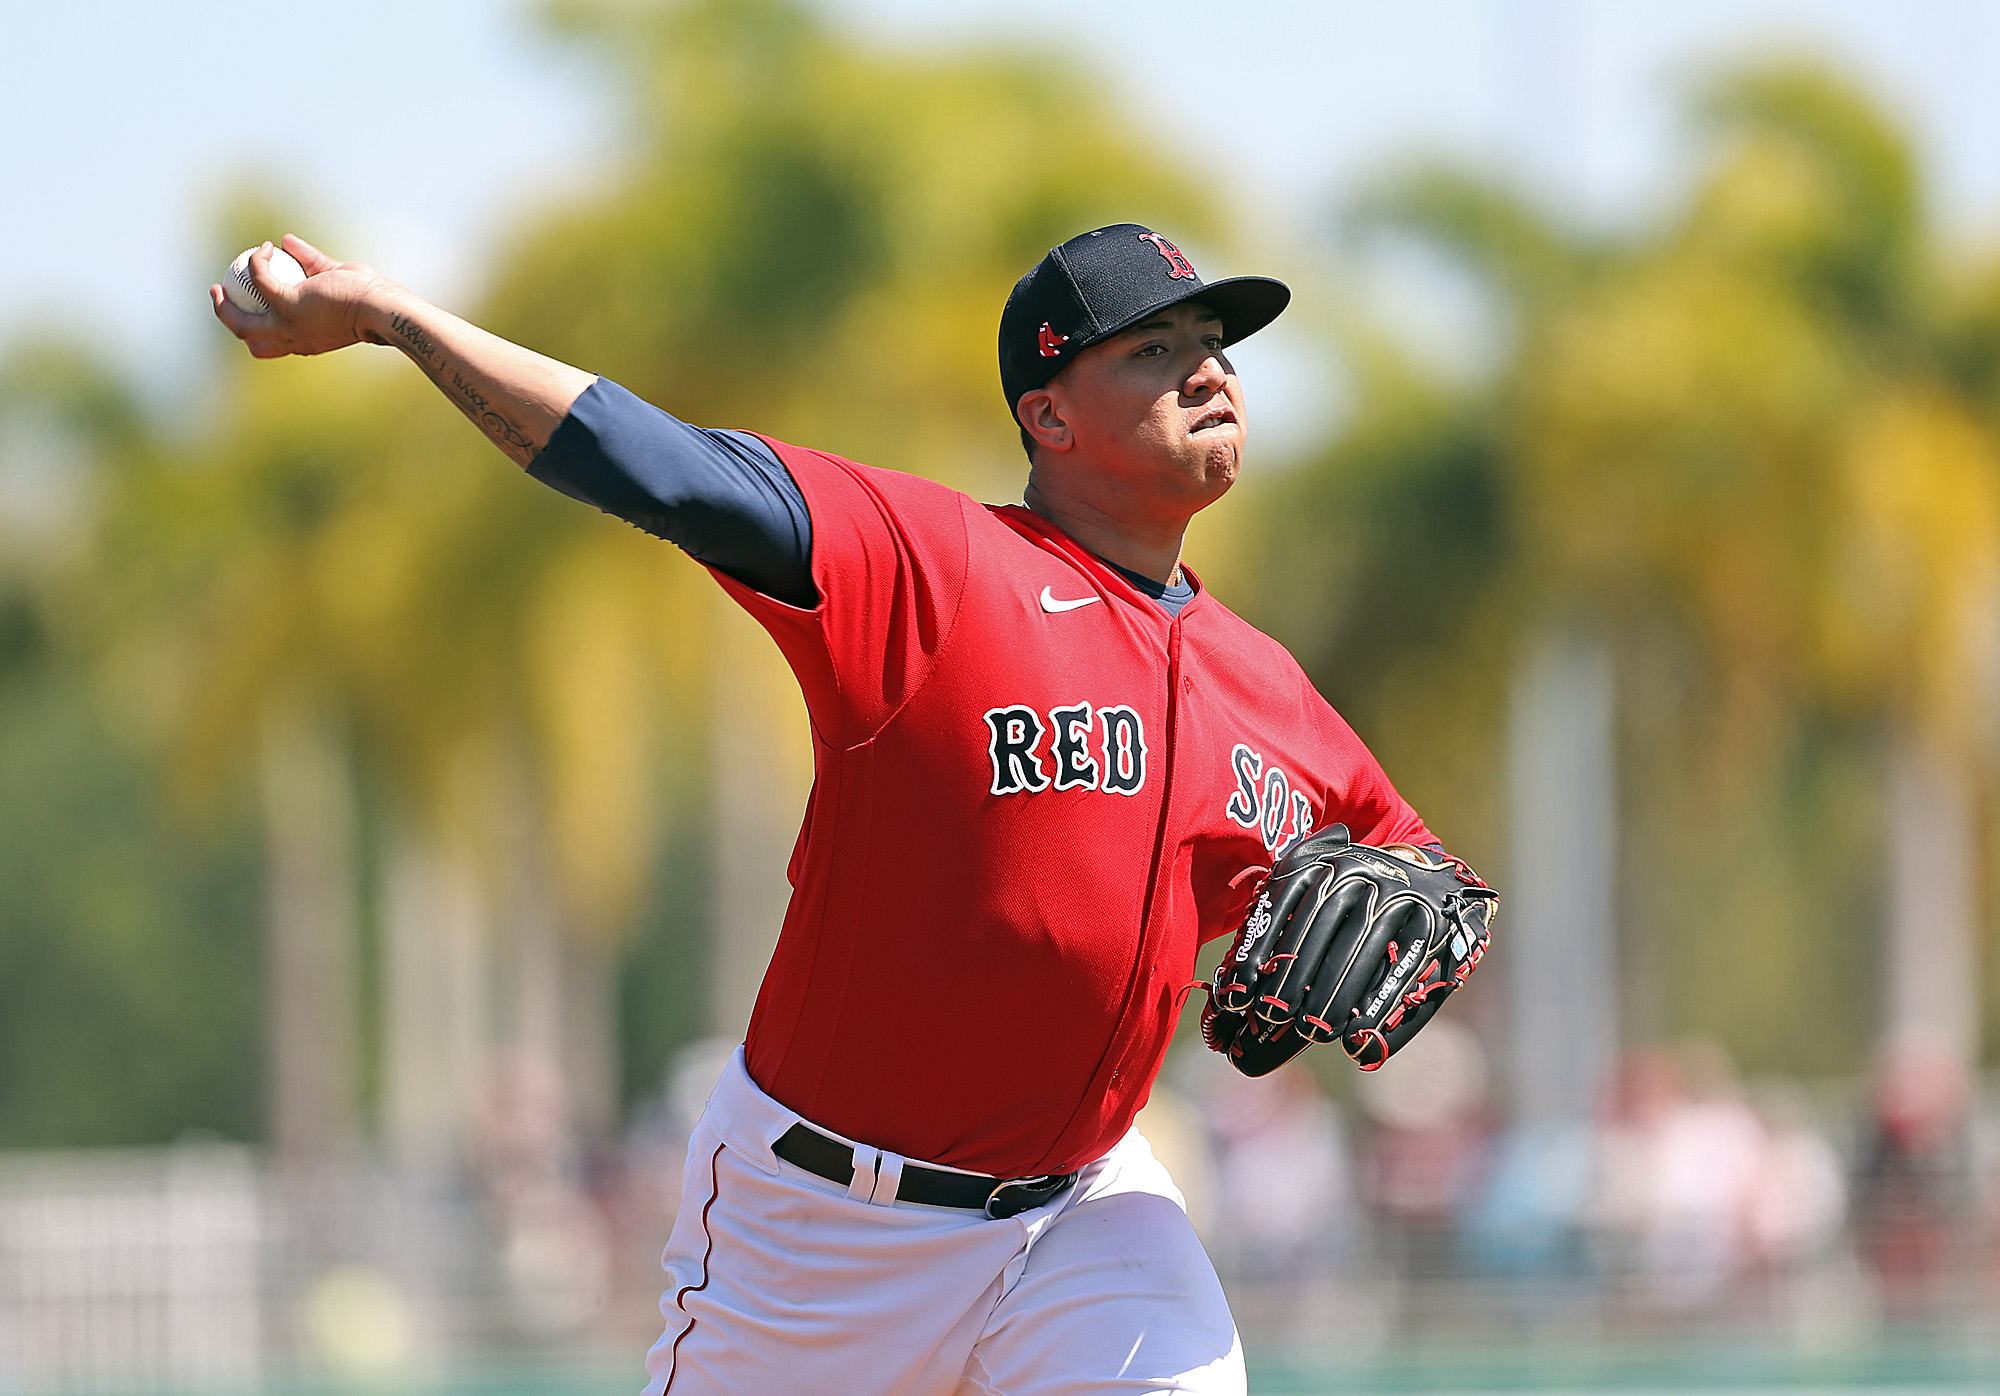 Red Sox top pitching prospect Bryan Mata has tear in UCL